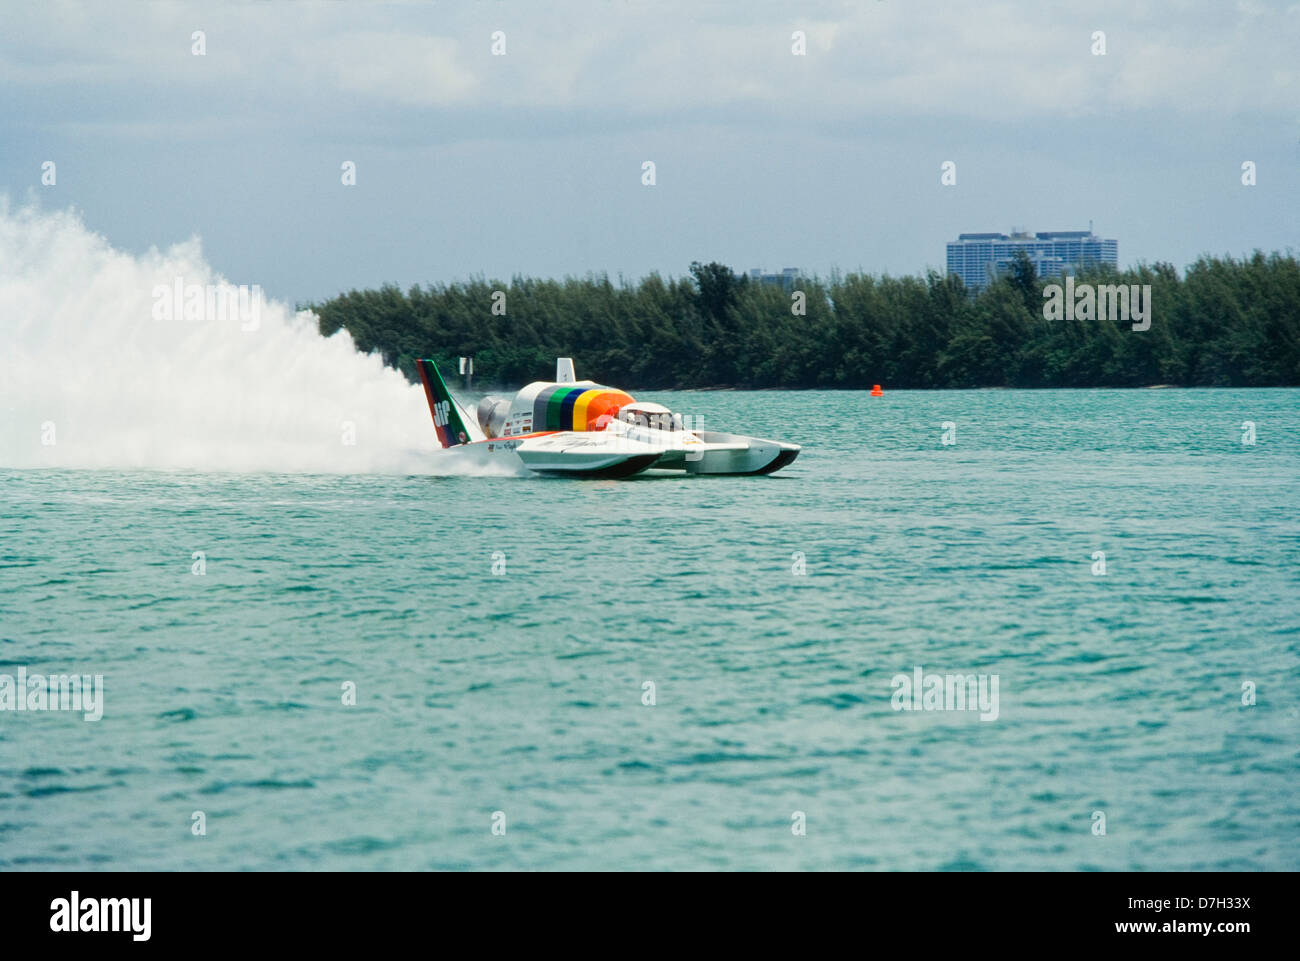 Unlimited Hydroplane Racing Stock Photos & Unlimited Hydroplane